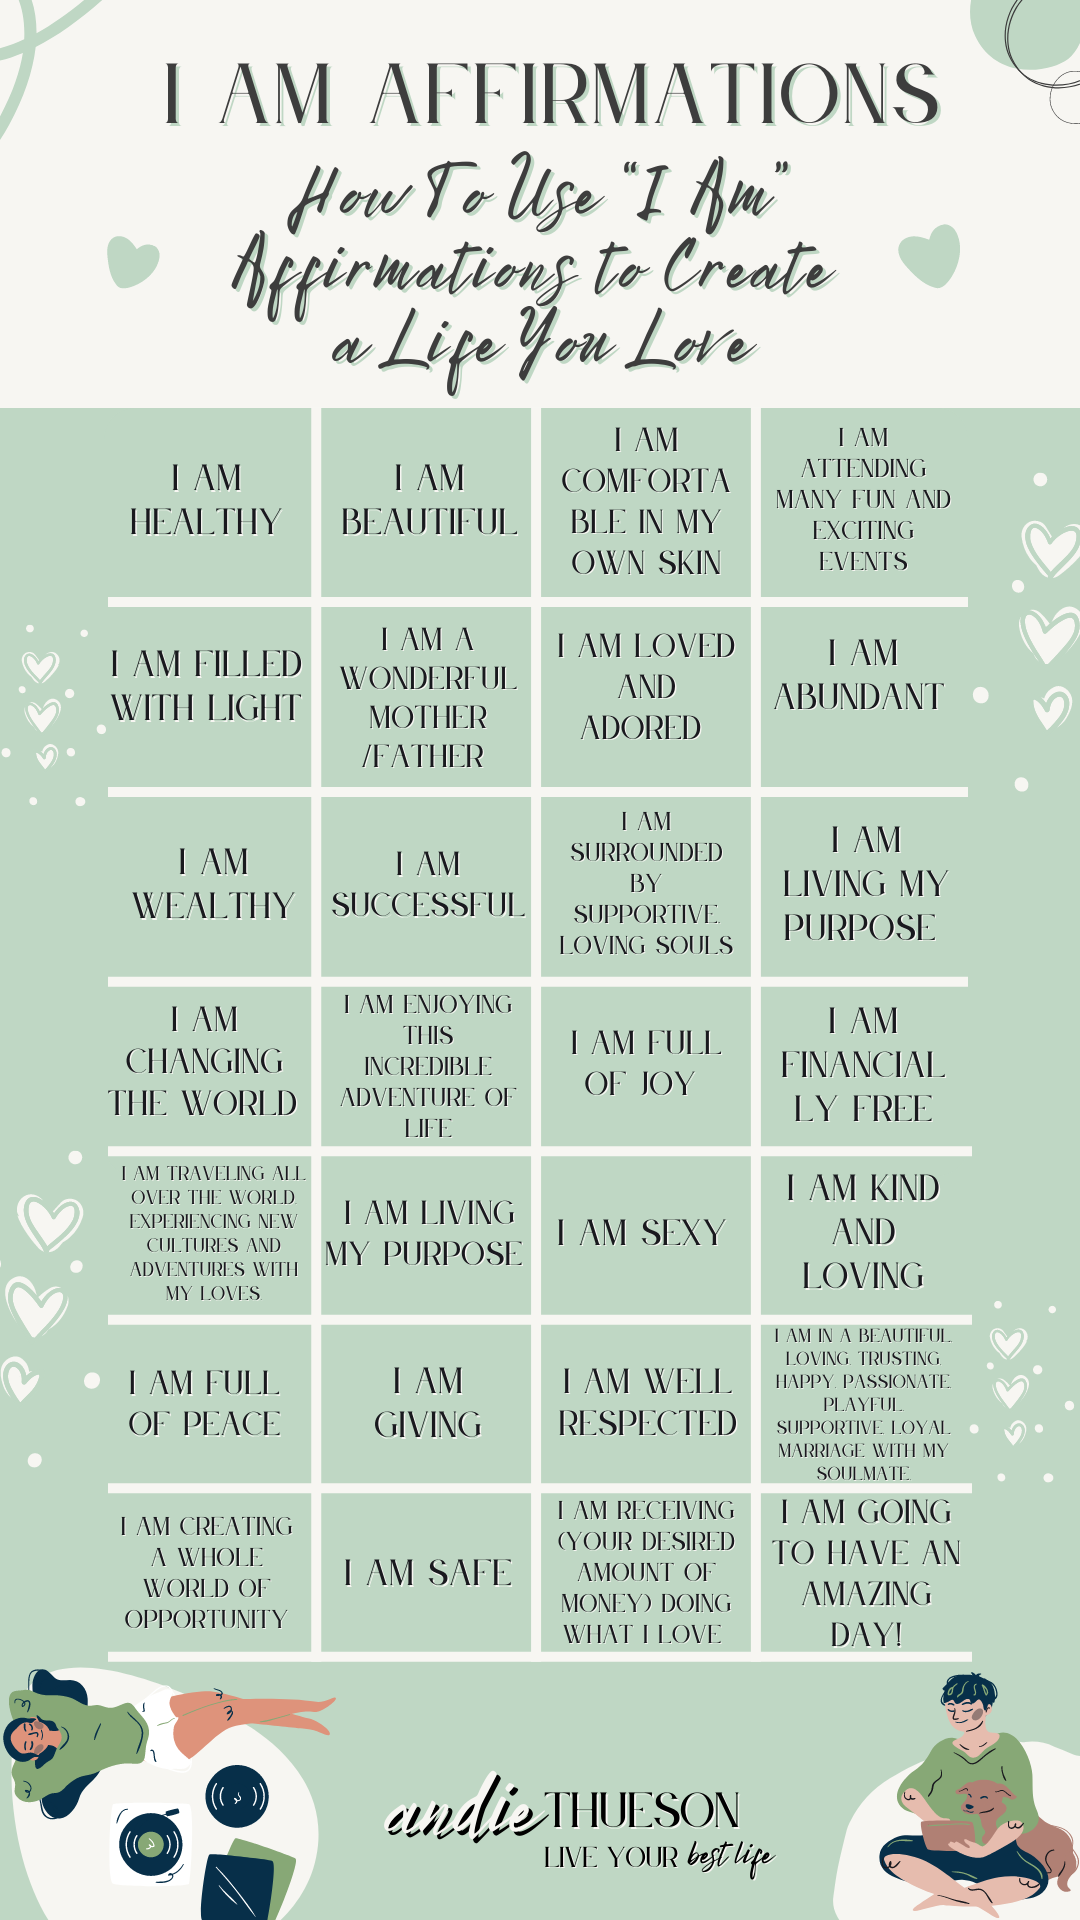 I am affirmations, are an essential tool when manifesting your new life.